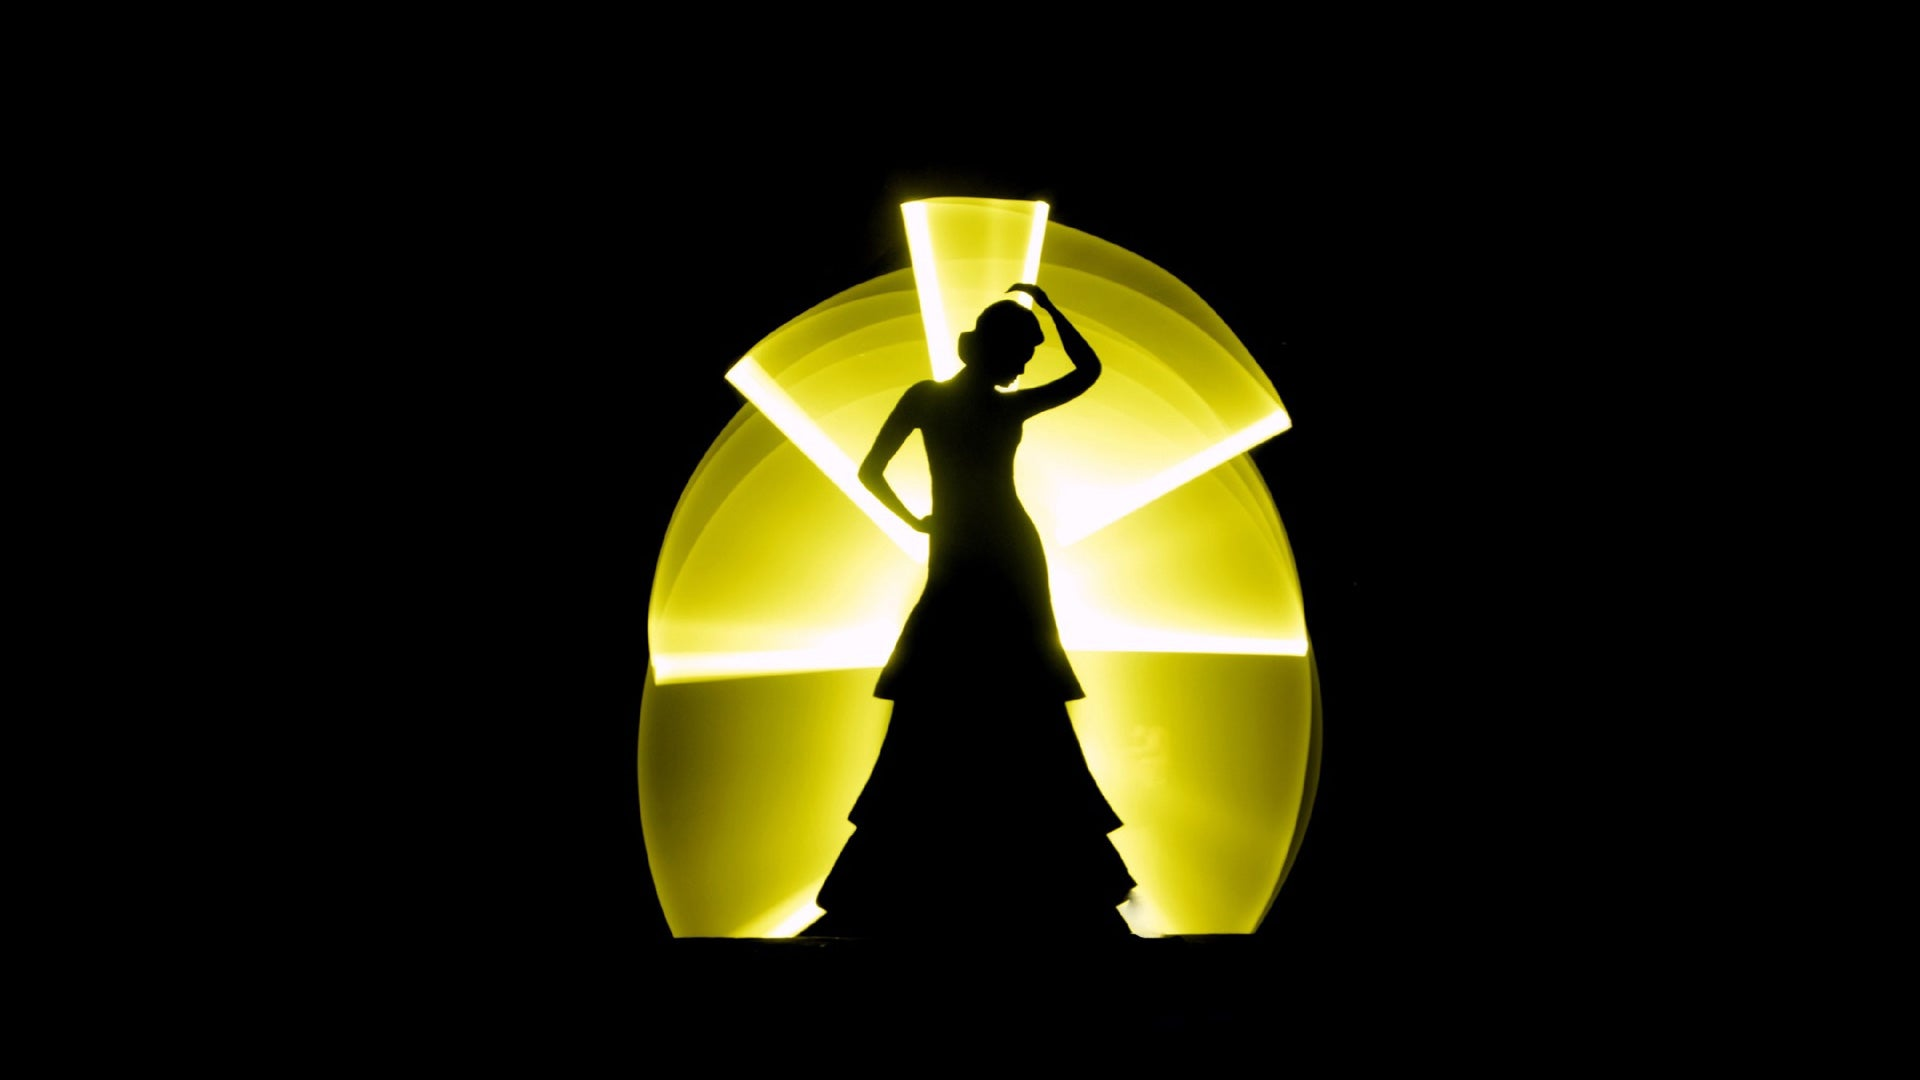 Light Painting Tutorial Image by Mel Tizzard